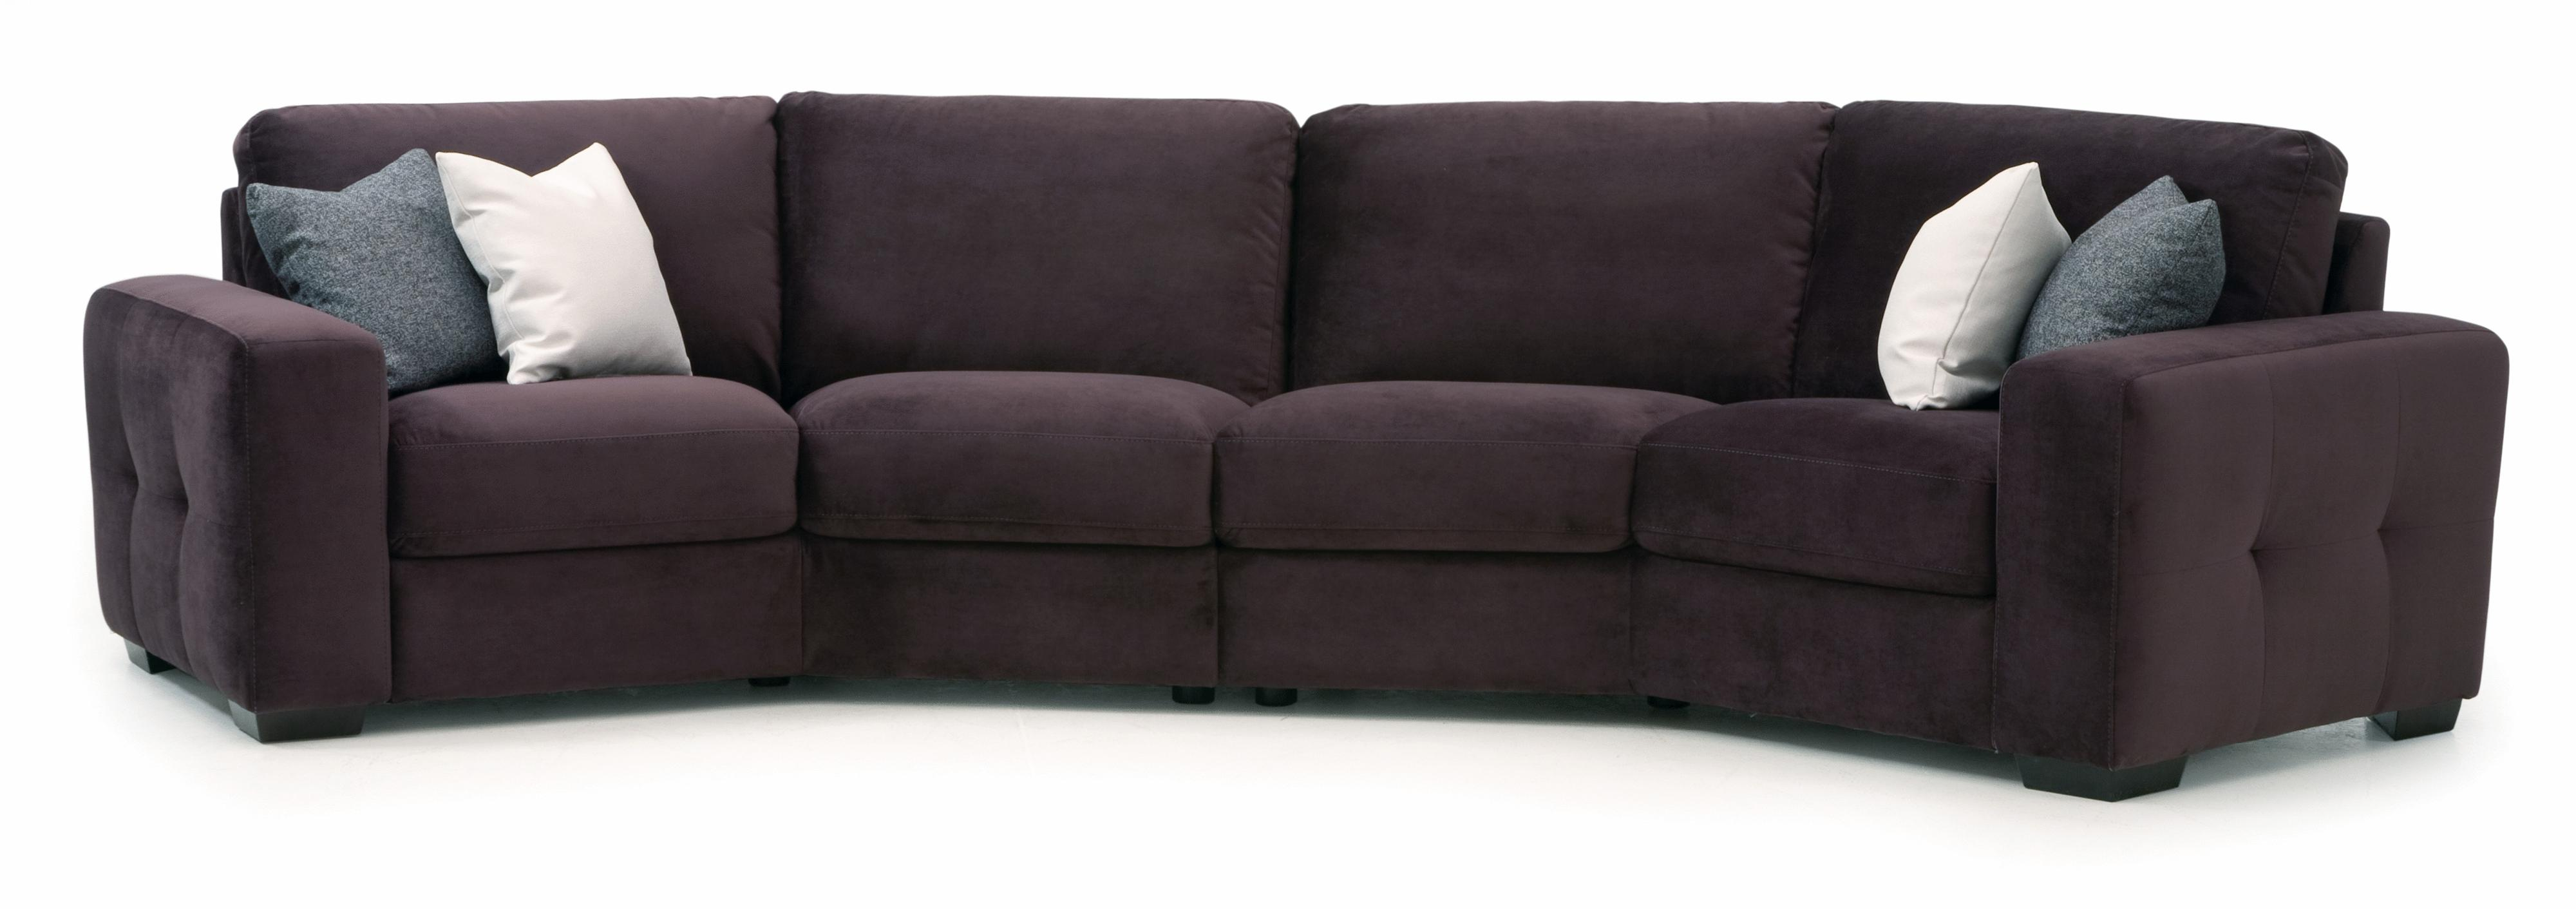 pause modern reclining sectional sofa by palliser kob billig online push contemporary four seater with